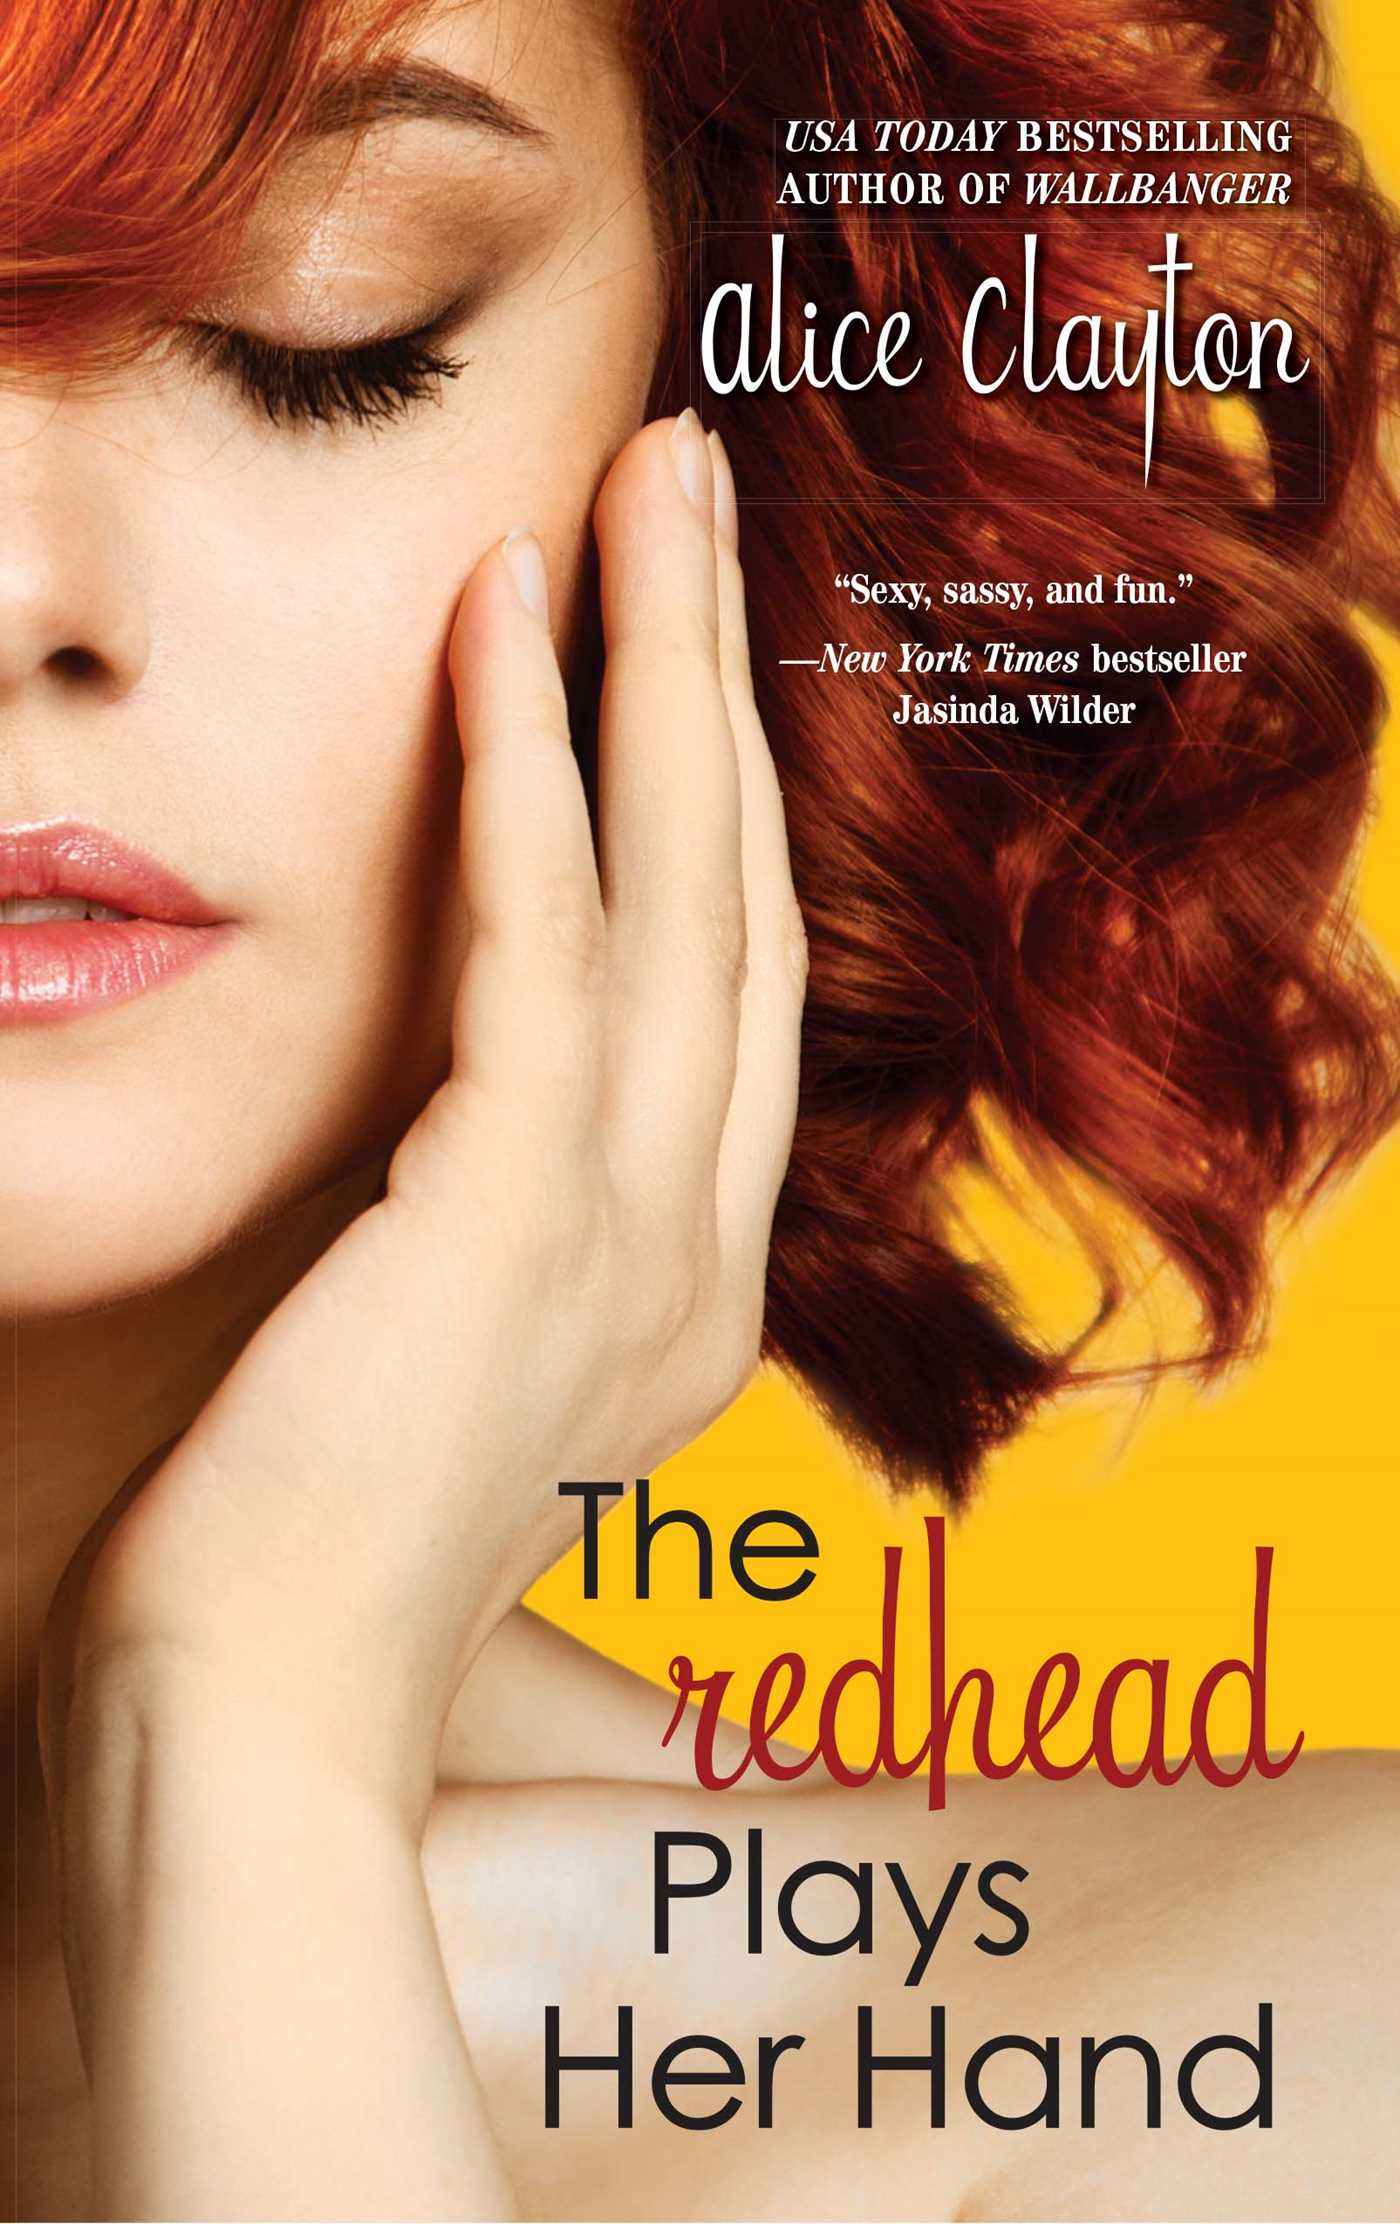 The redhead plays her hand 9781476741253 hr